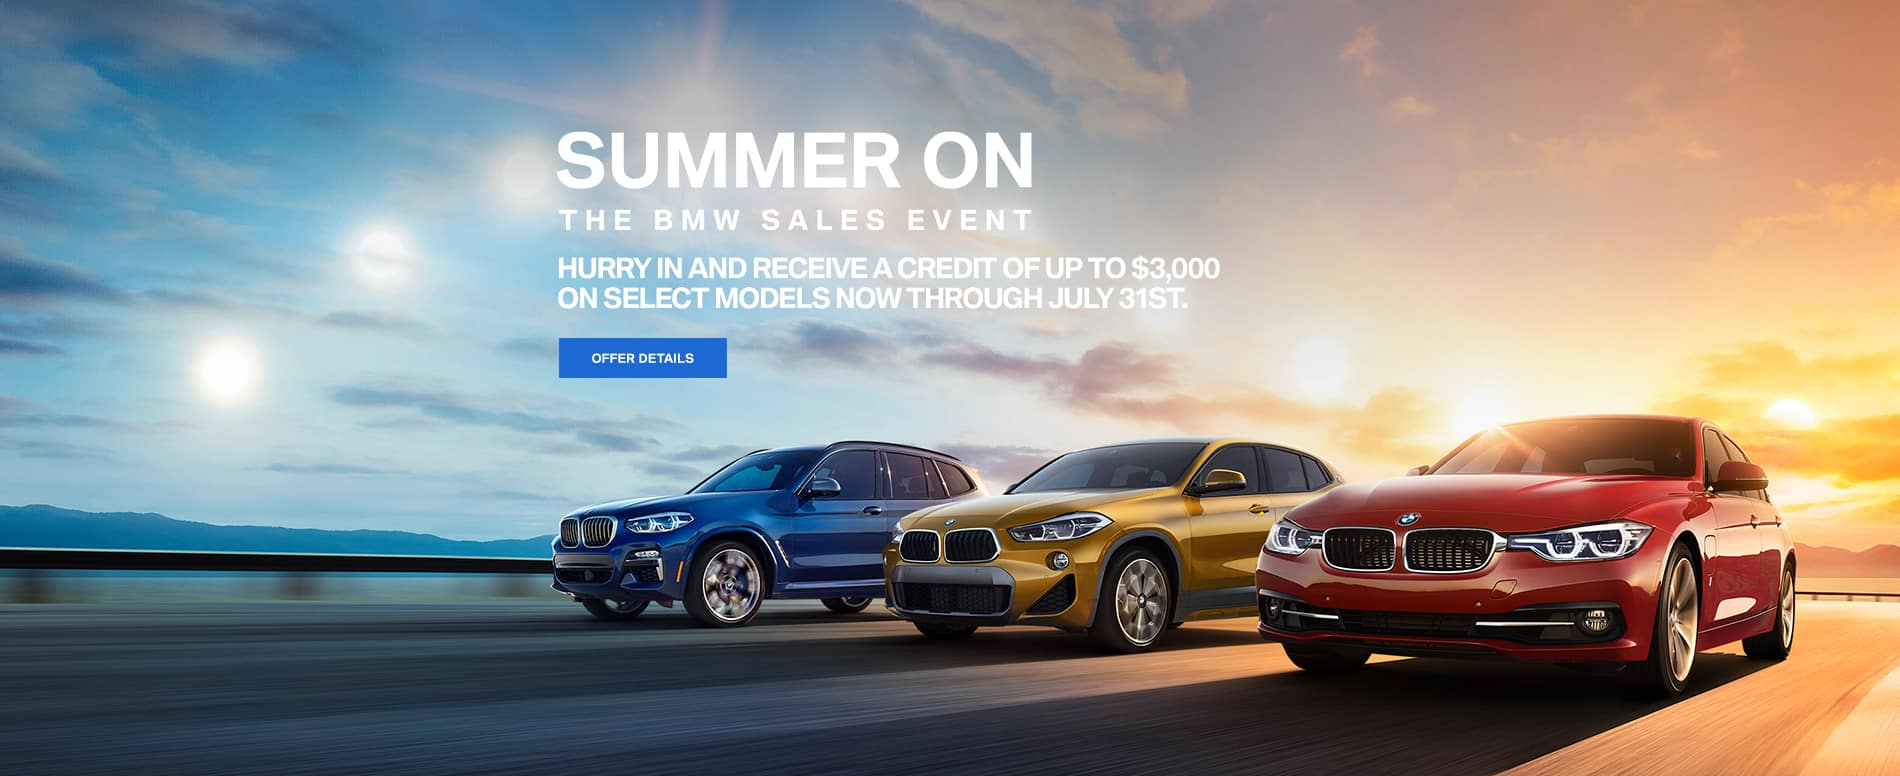 summer on sales event habberstad bmw bay shore long island